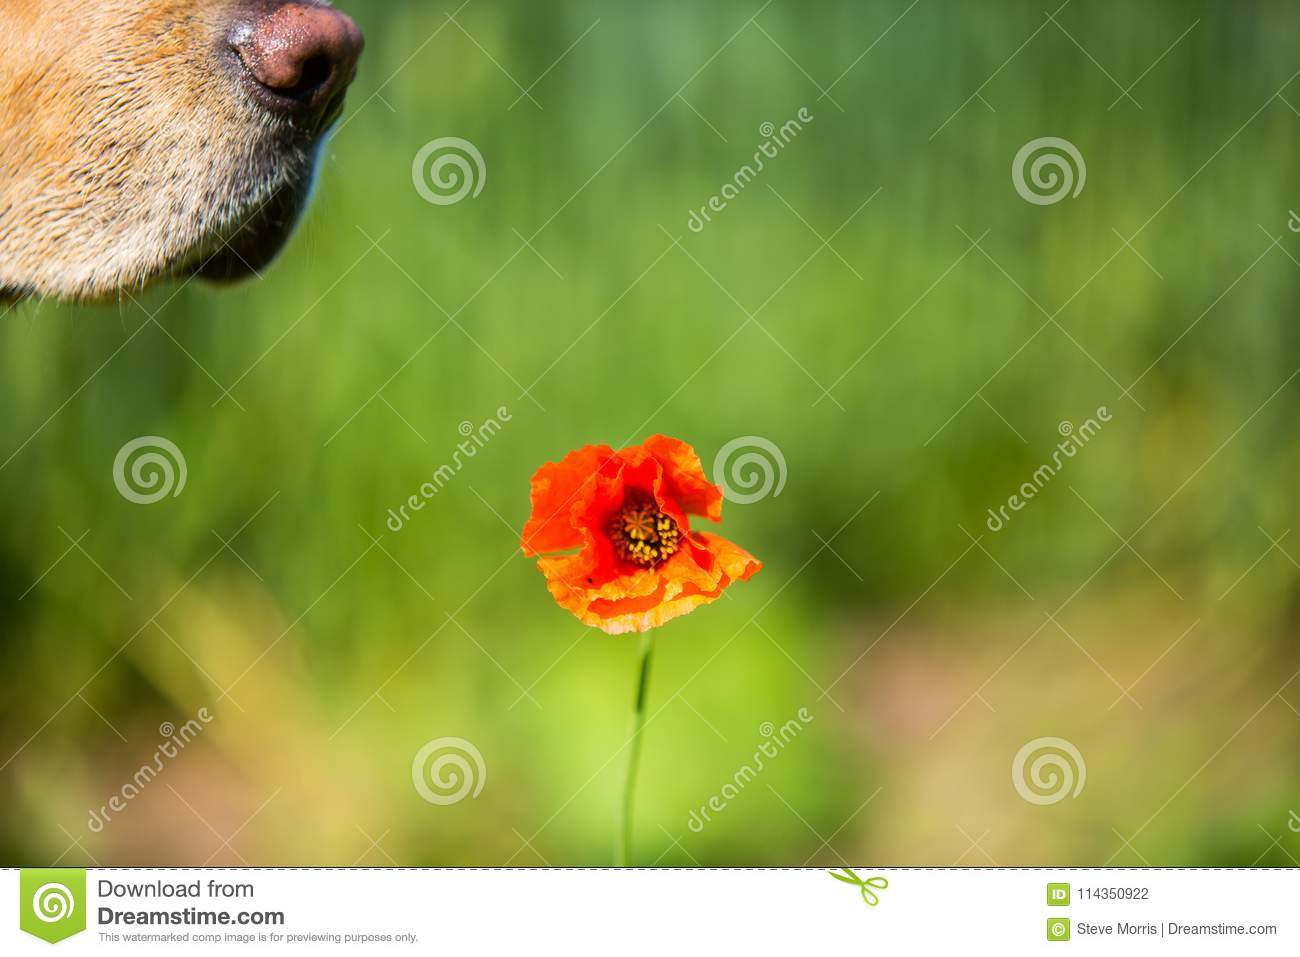 A Red Poppy In A Field Of Crops With A Dogs Nose Stock Photo